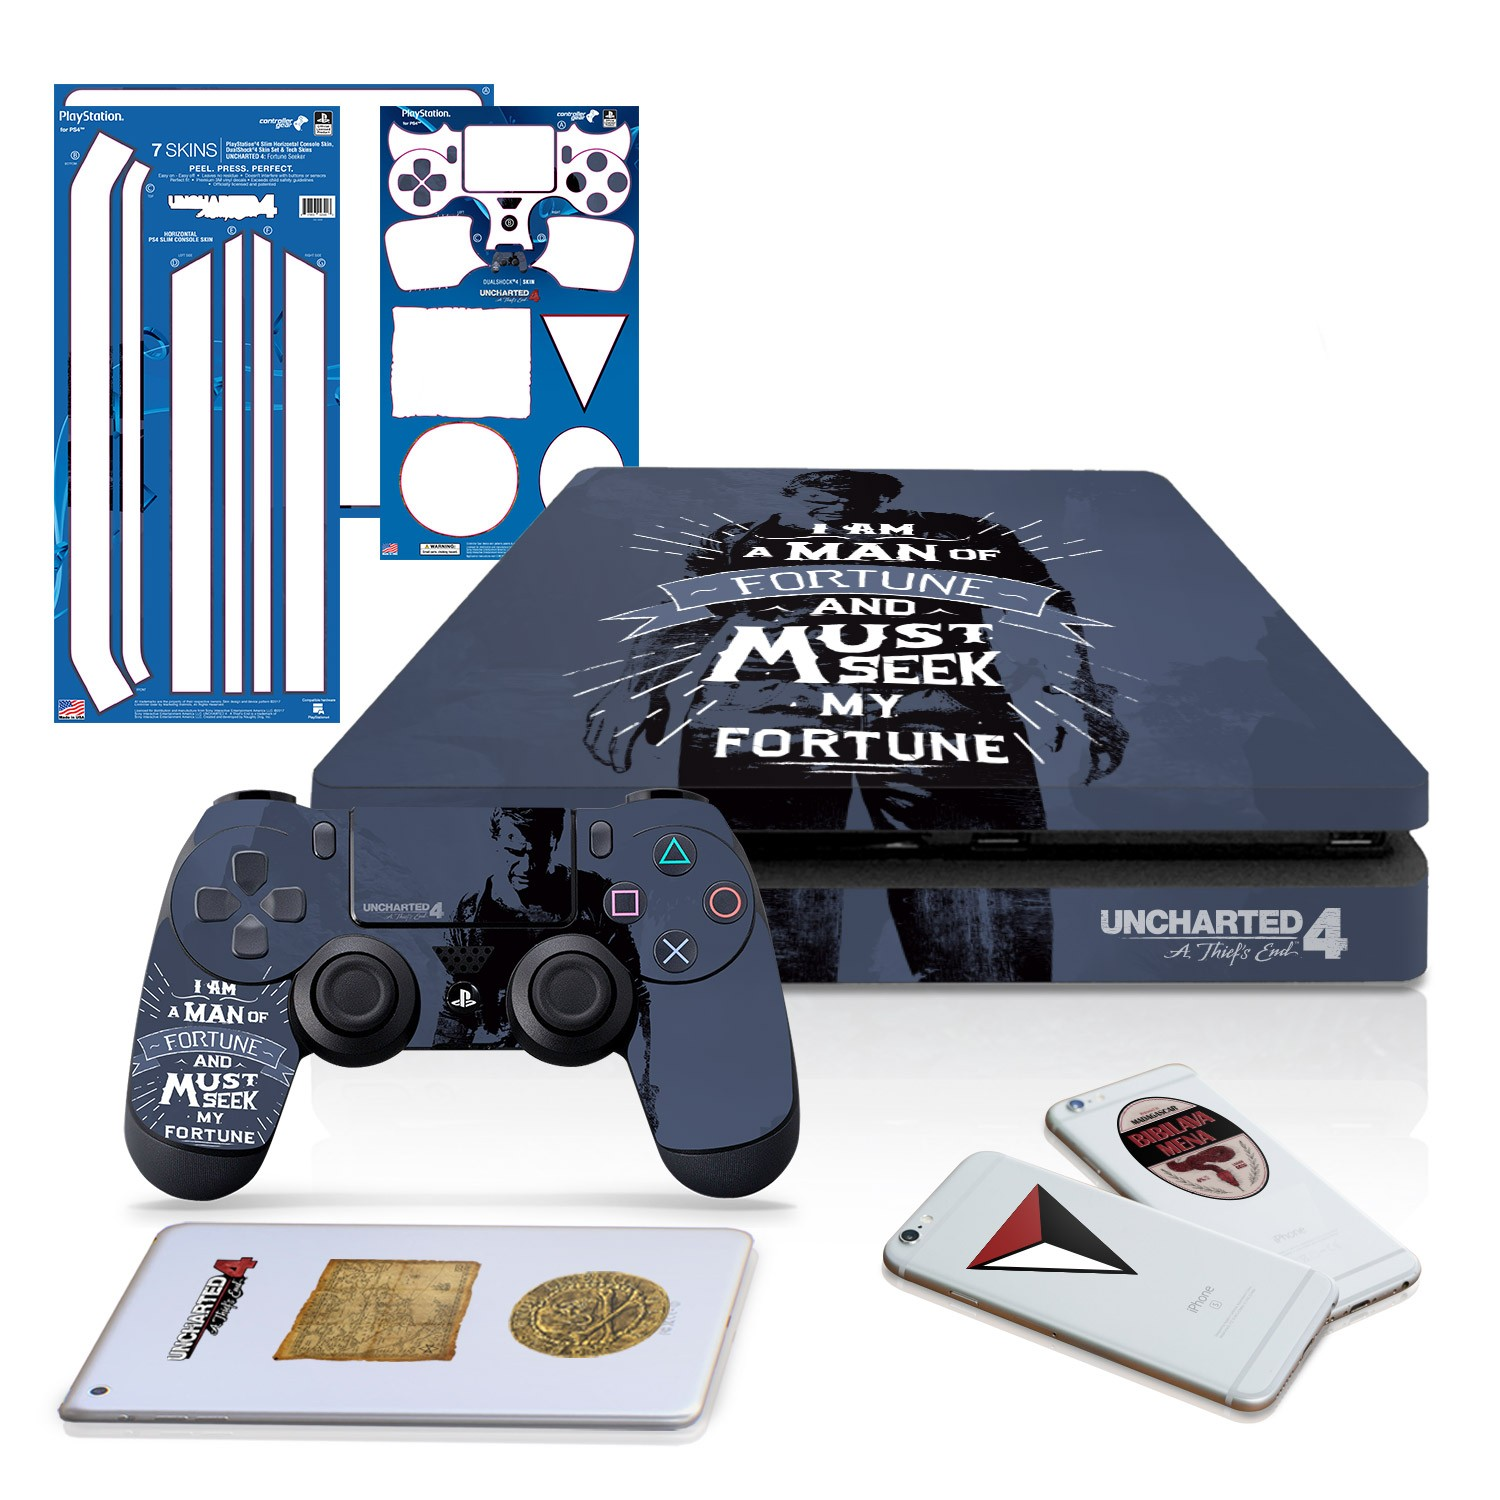 Uncharted 4 Fortune Seeker - PS4 SLIM Horizontal Console and Controller Gaming Skin Pack - Officially Licensed by PlayStation - Controller Gear